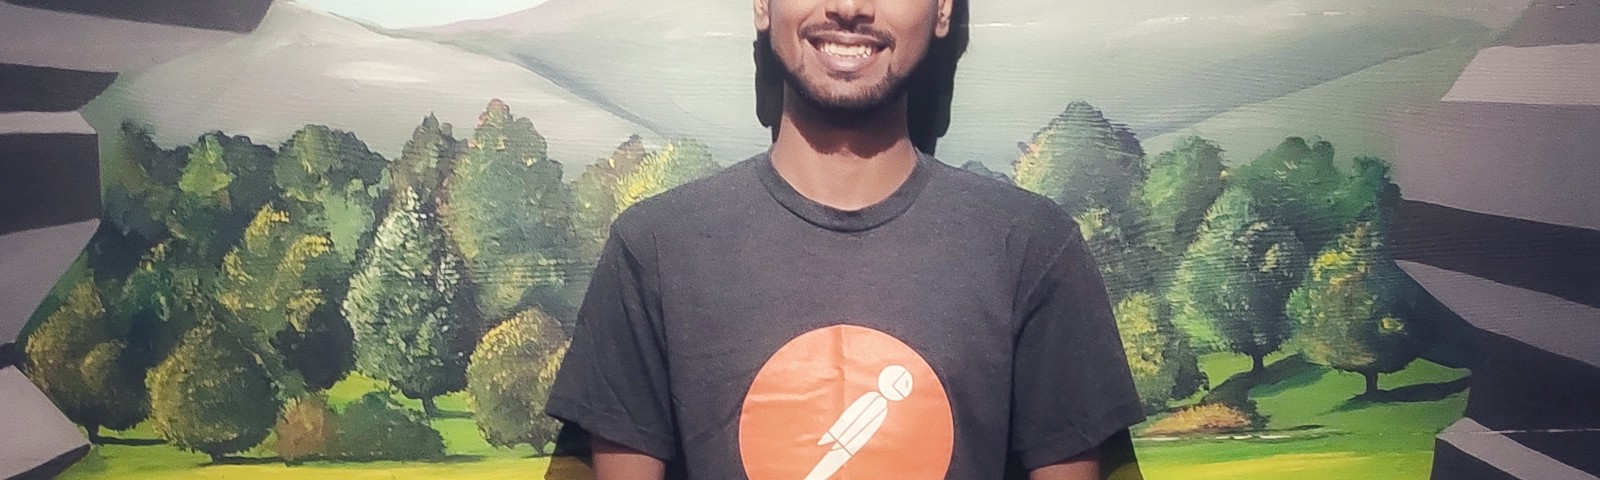 Vinit Shahdeo — Software Engineer at Postman